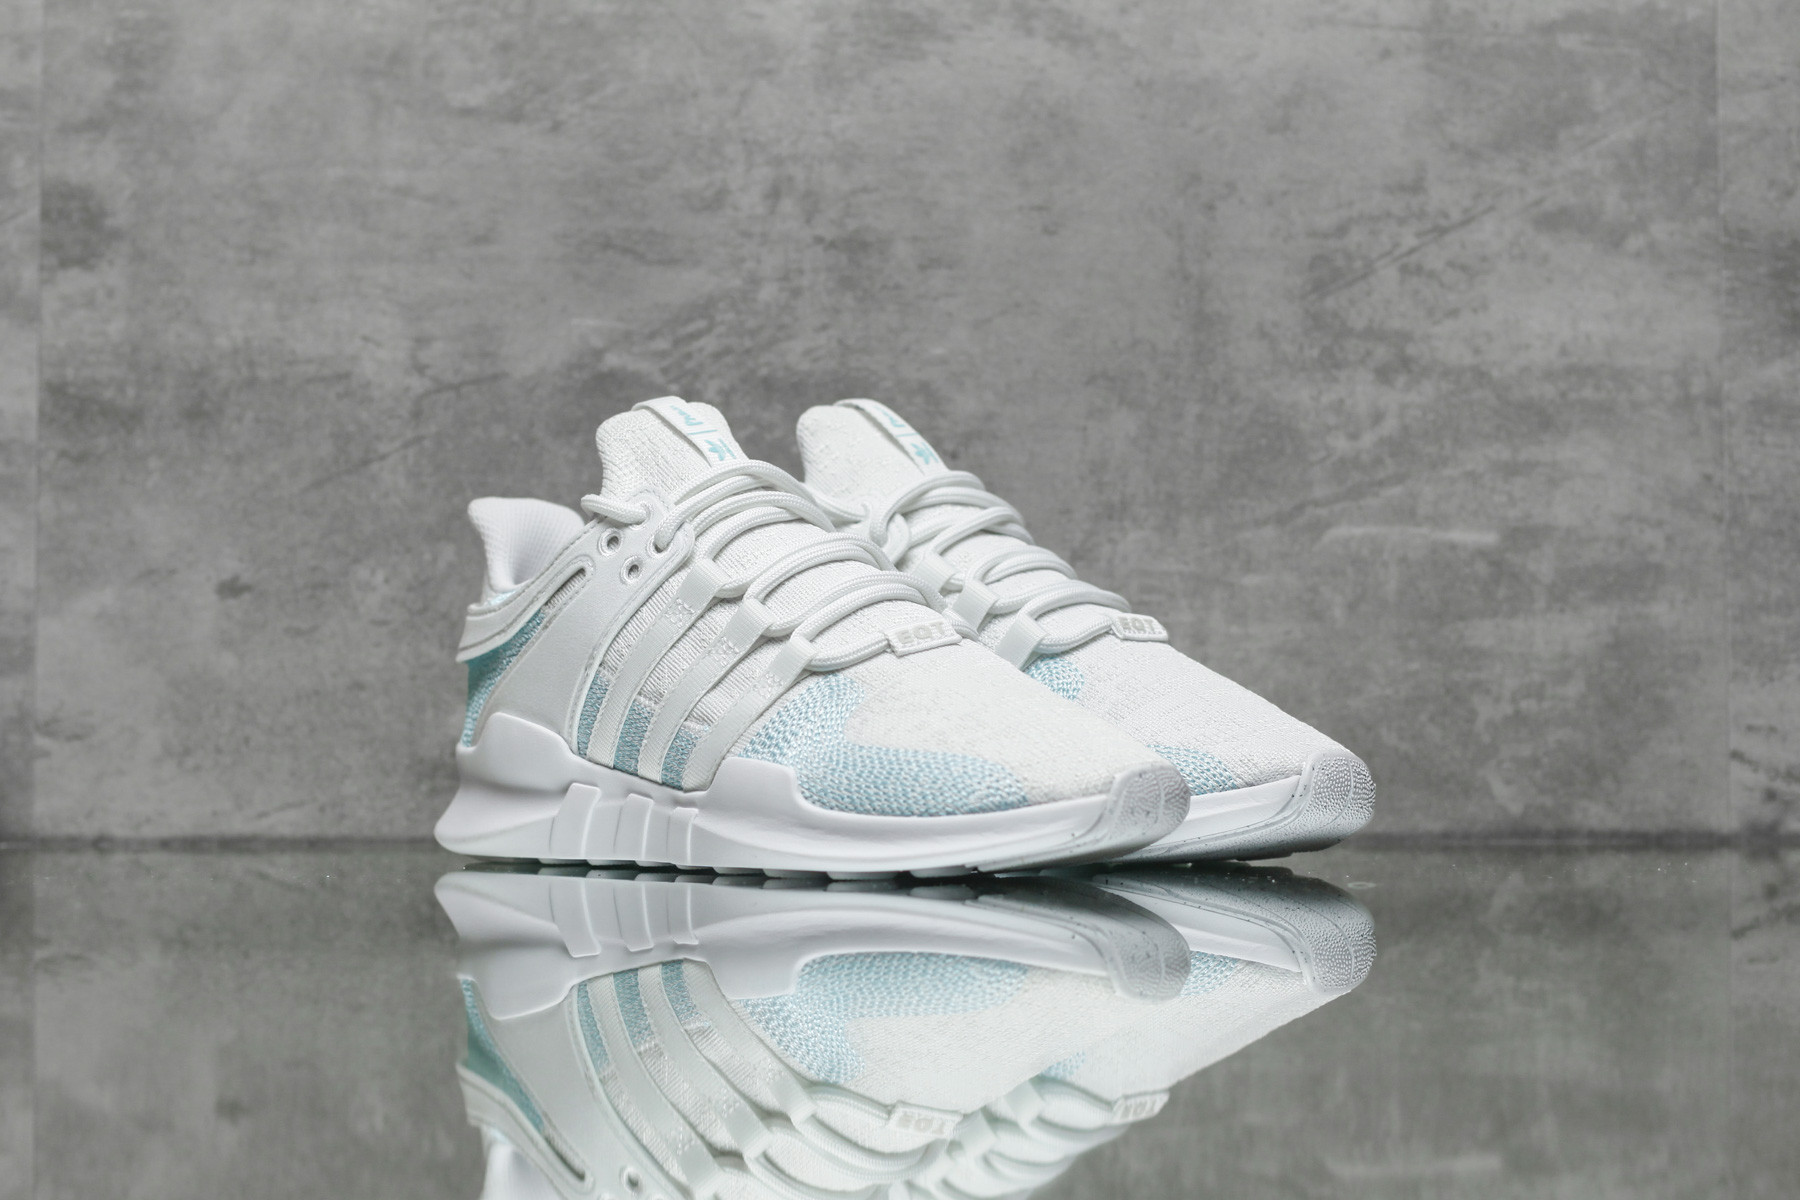 adidas and Parley Create